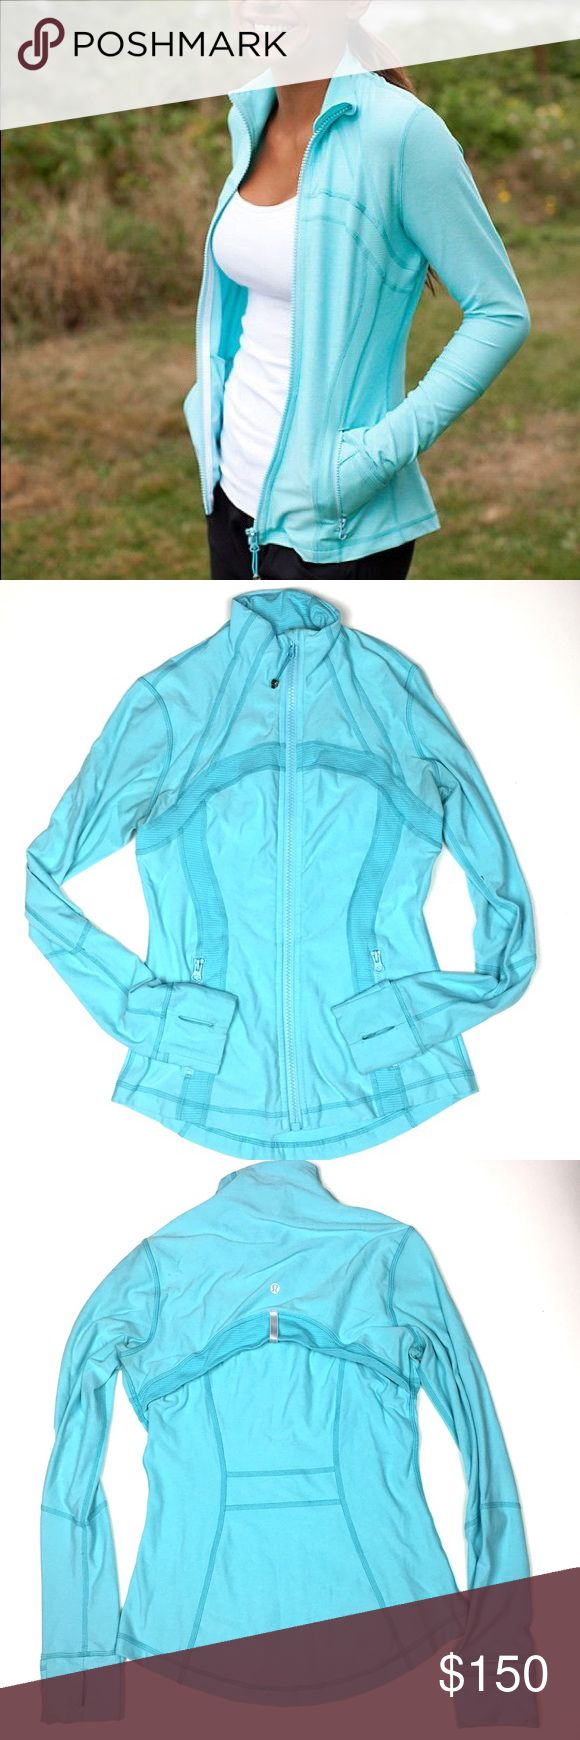 Lululemon Define Jacket in Tiffany Blue color Stunning rare color!! Gorgeous details. Thumb holes. Pockets. Very good condition. lululemon athletica Jackets & Coats